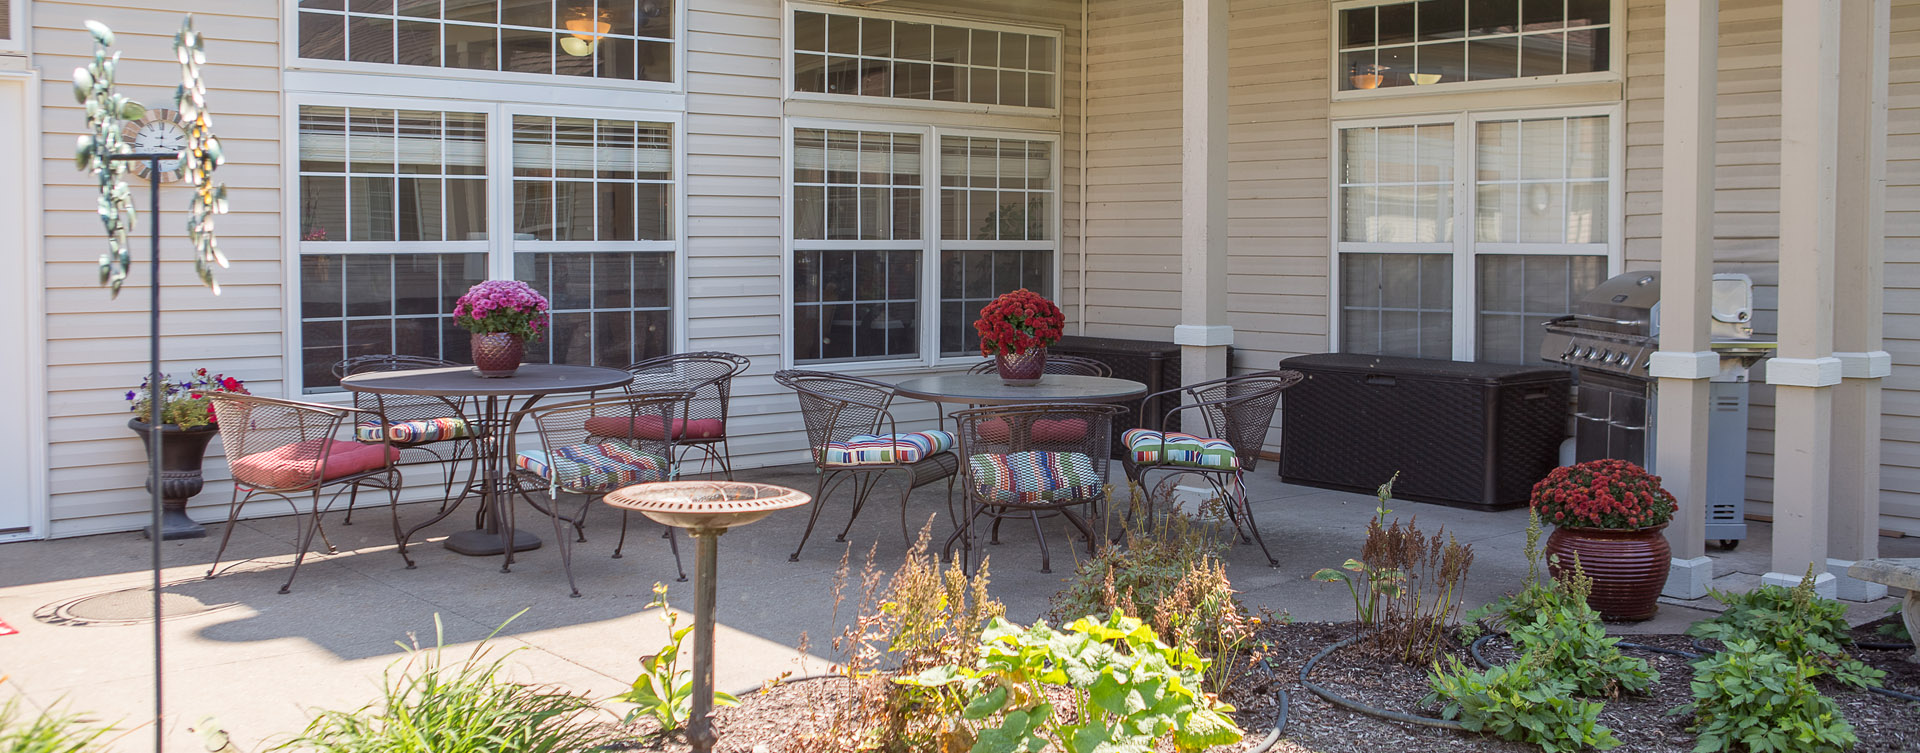 Enjoy the outdoors in a whole new light by stepping into our secure courtyard at Bickford of Davenport